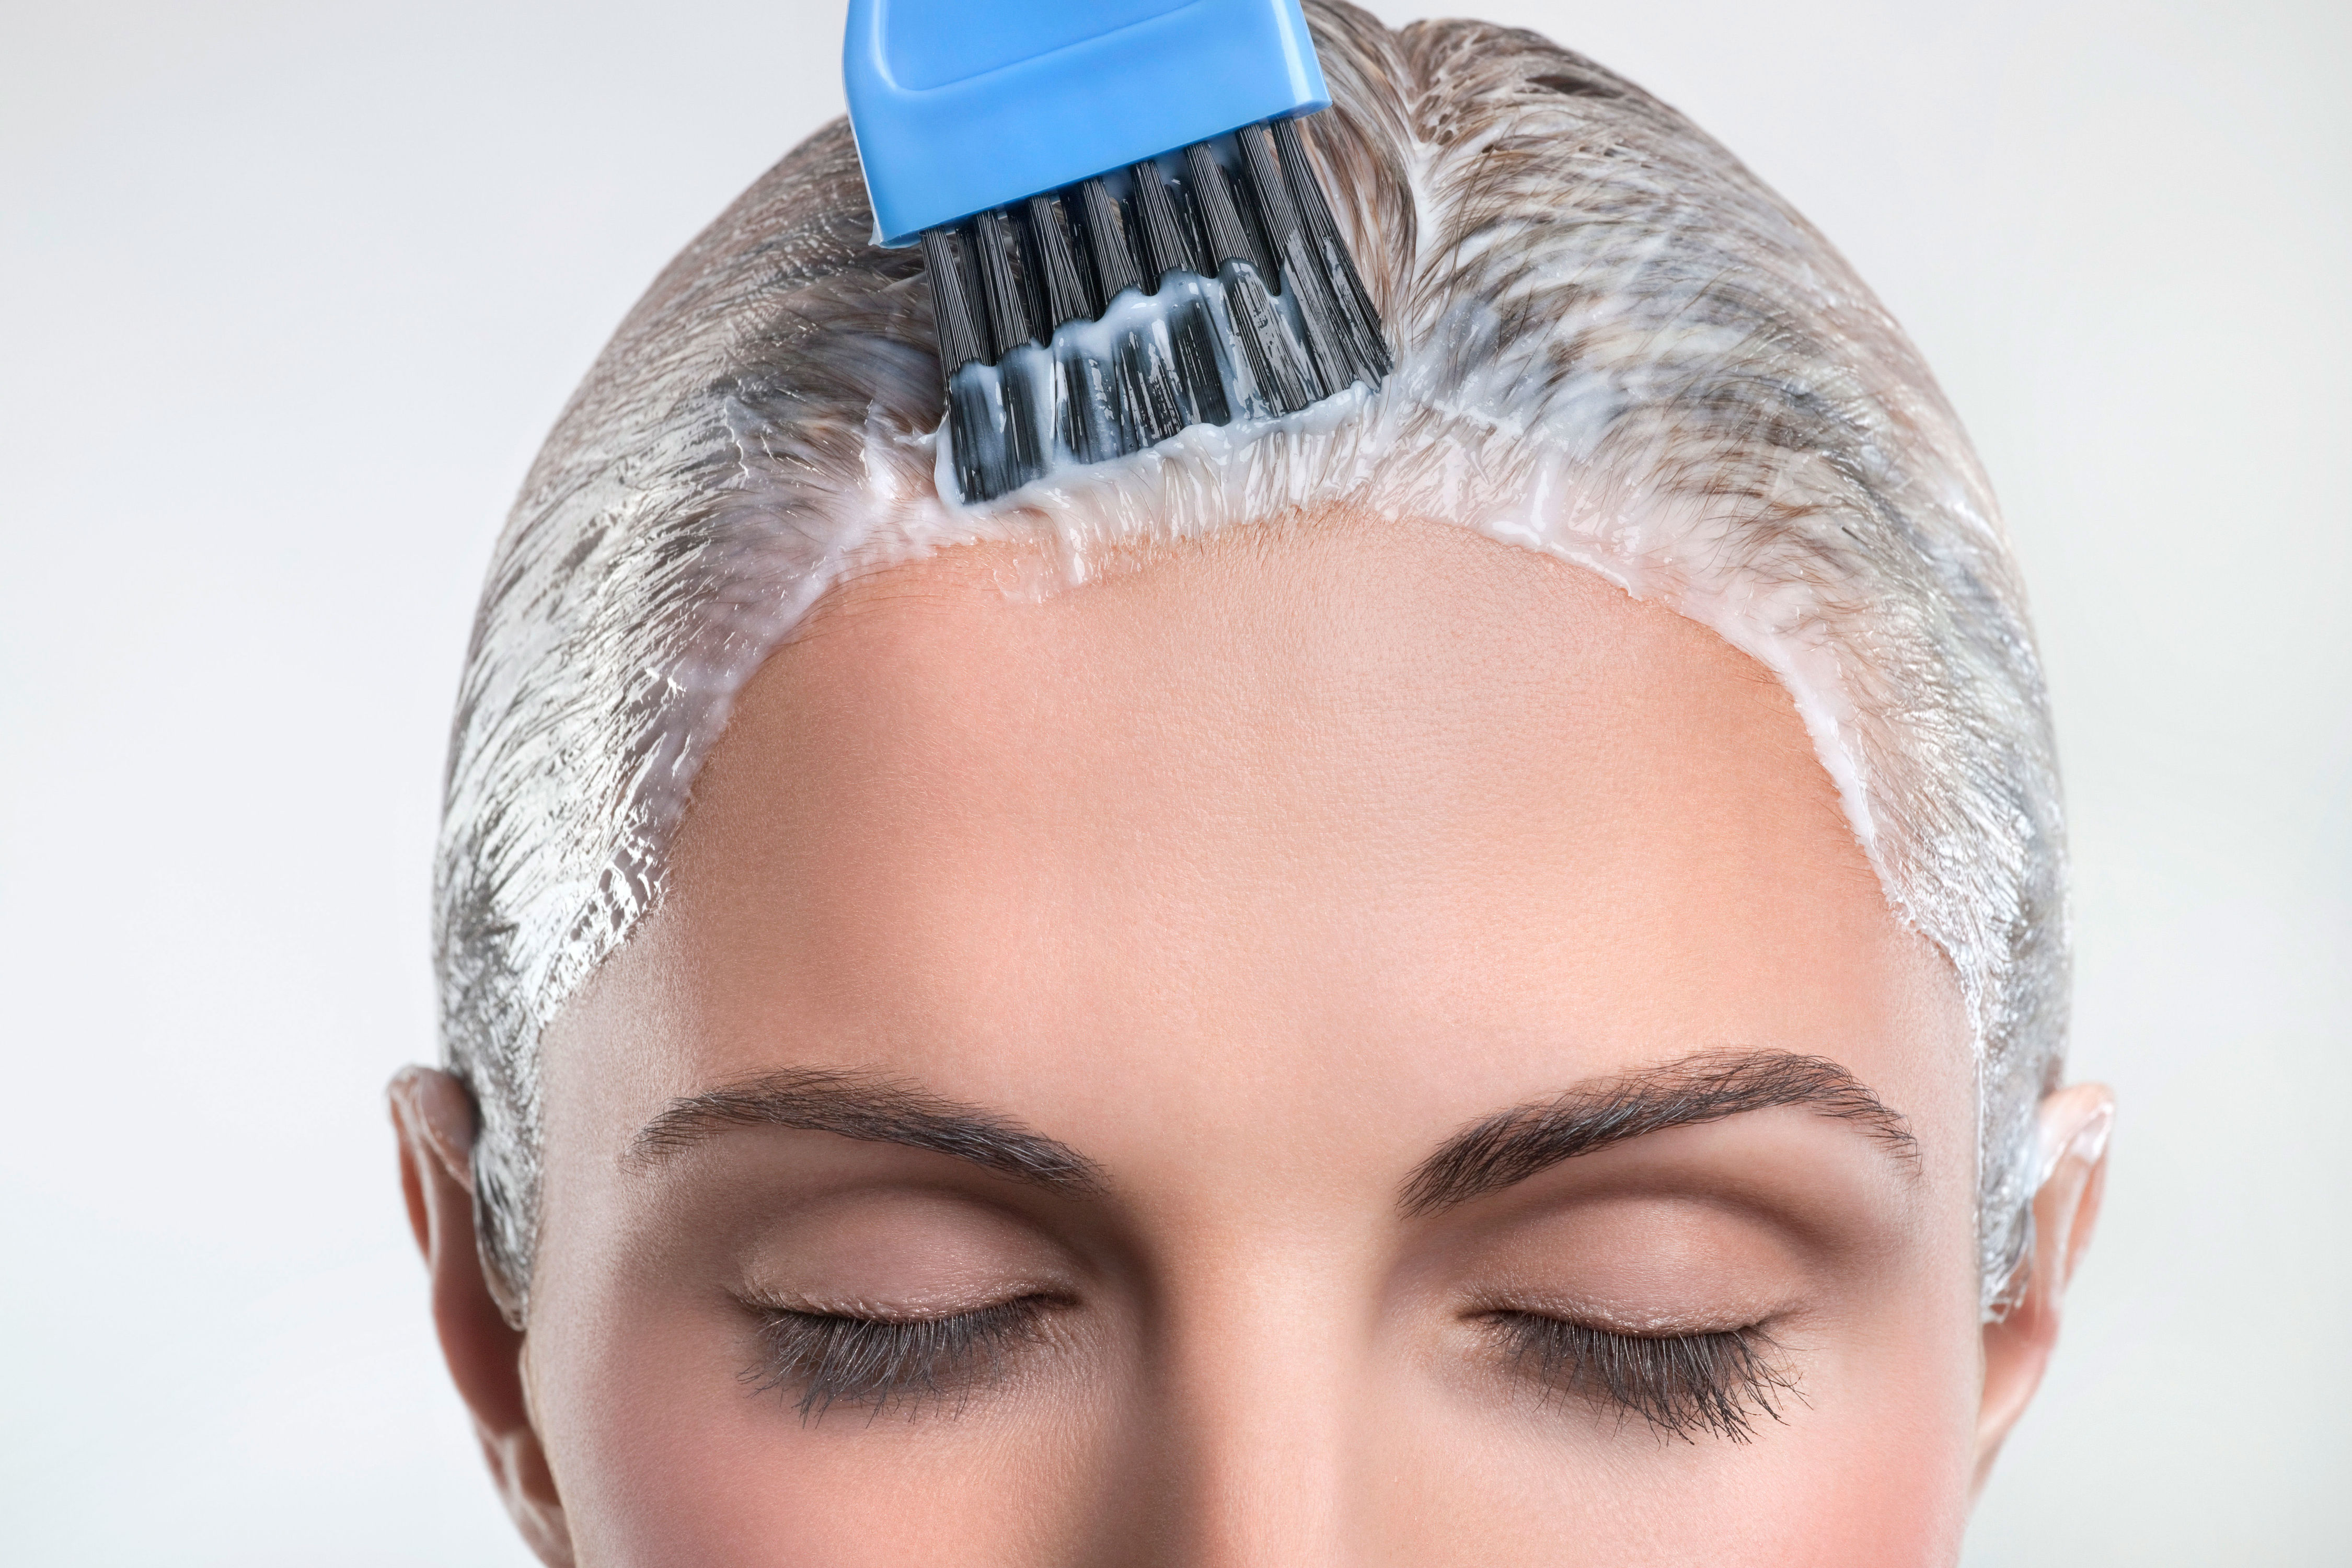 WATCH: How To Get Hair Dye Off Skin Quickly and Safely